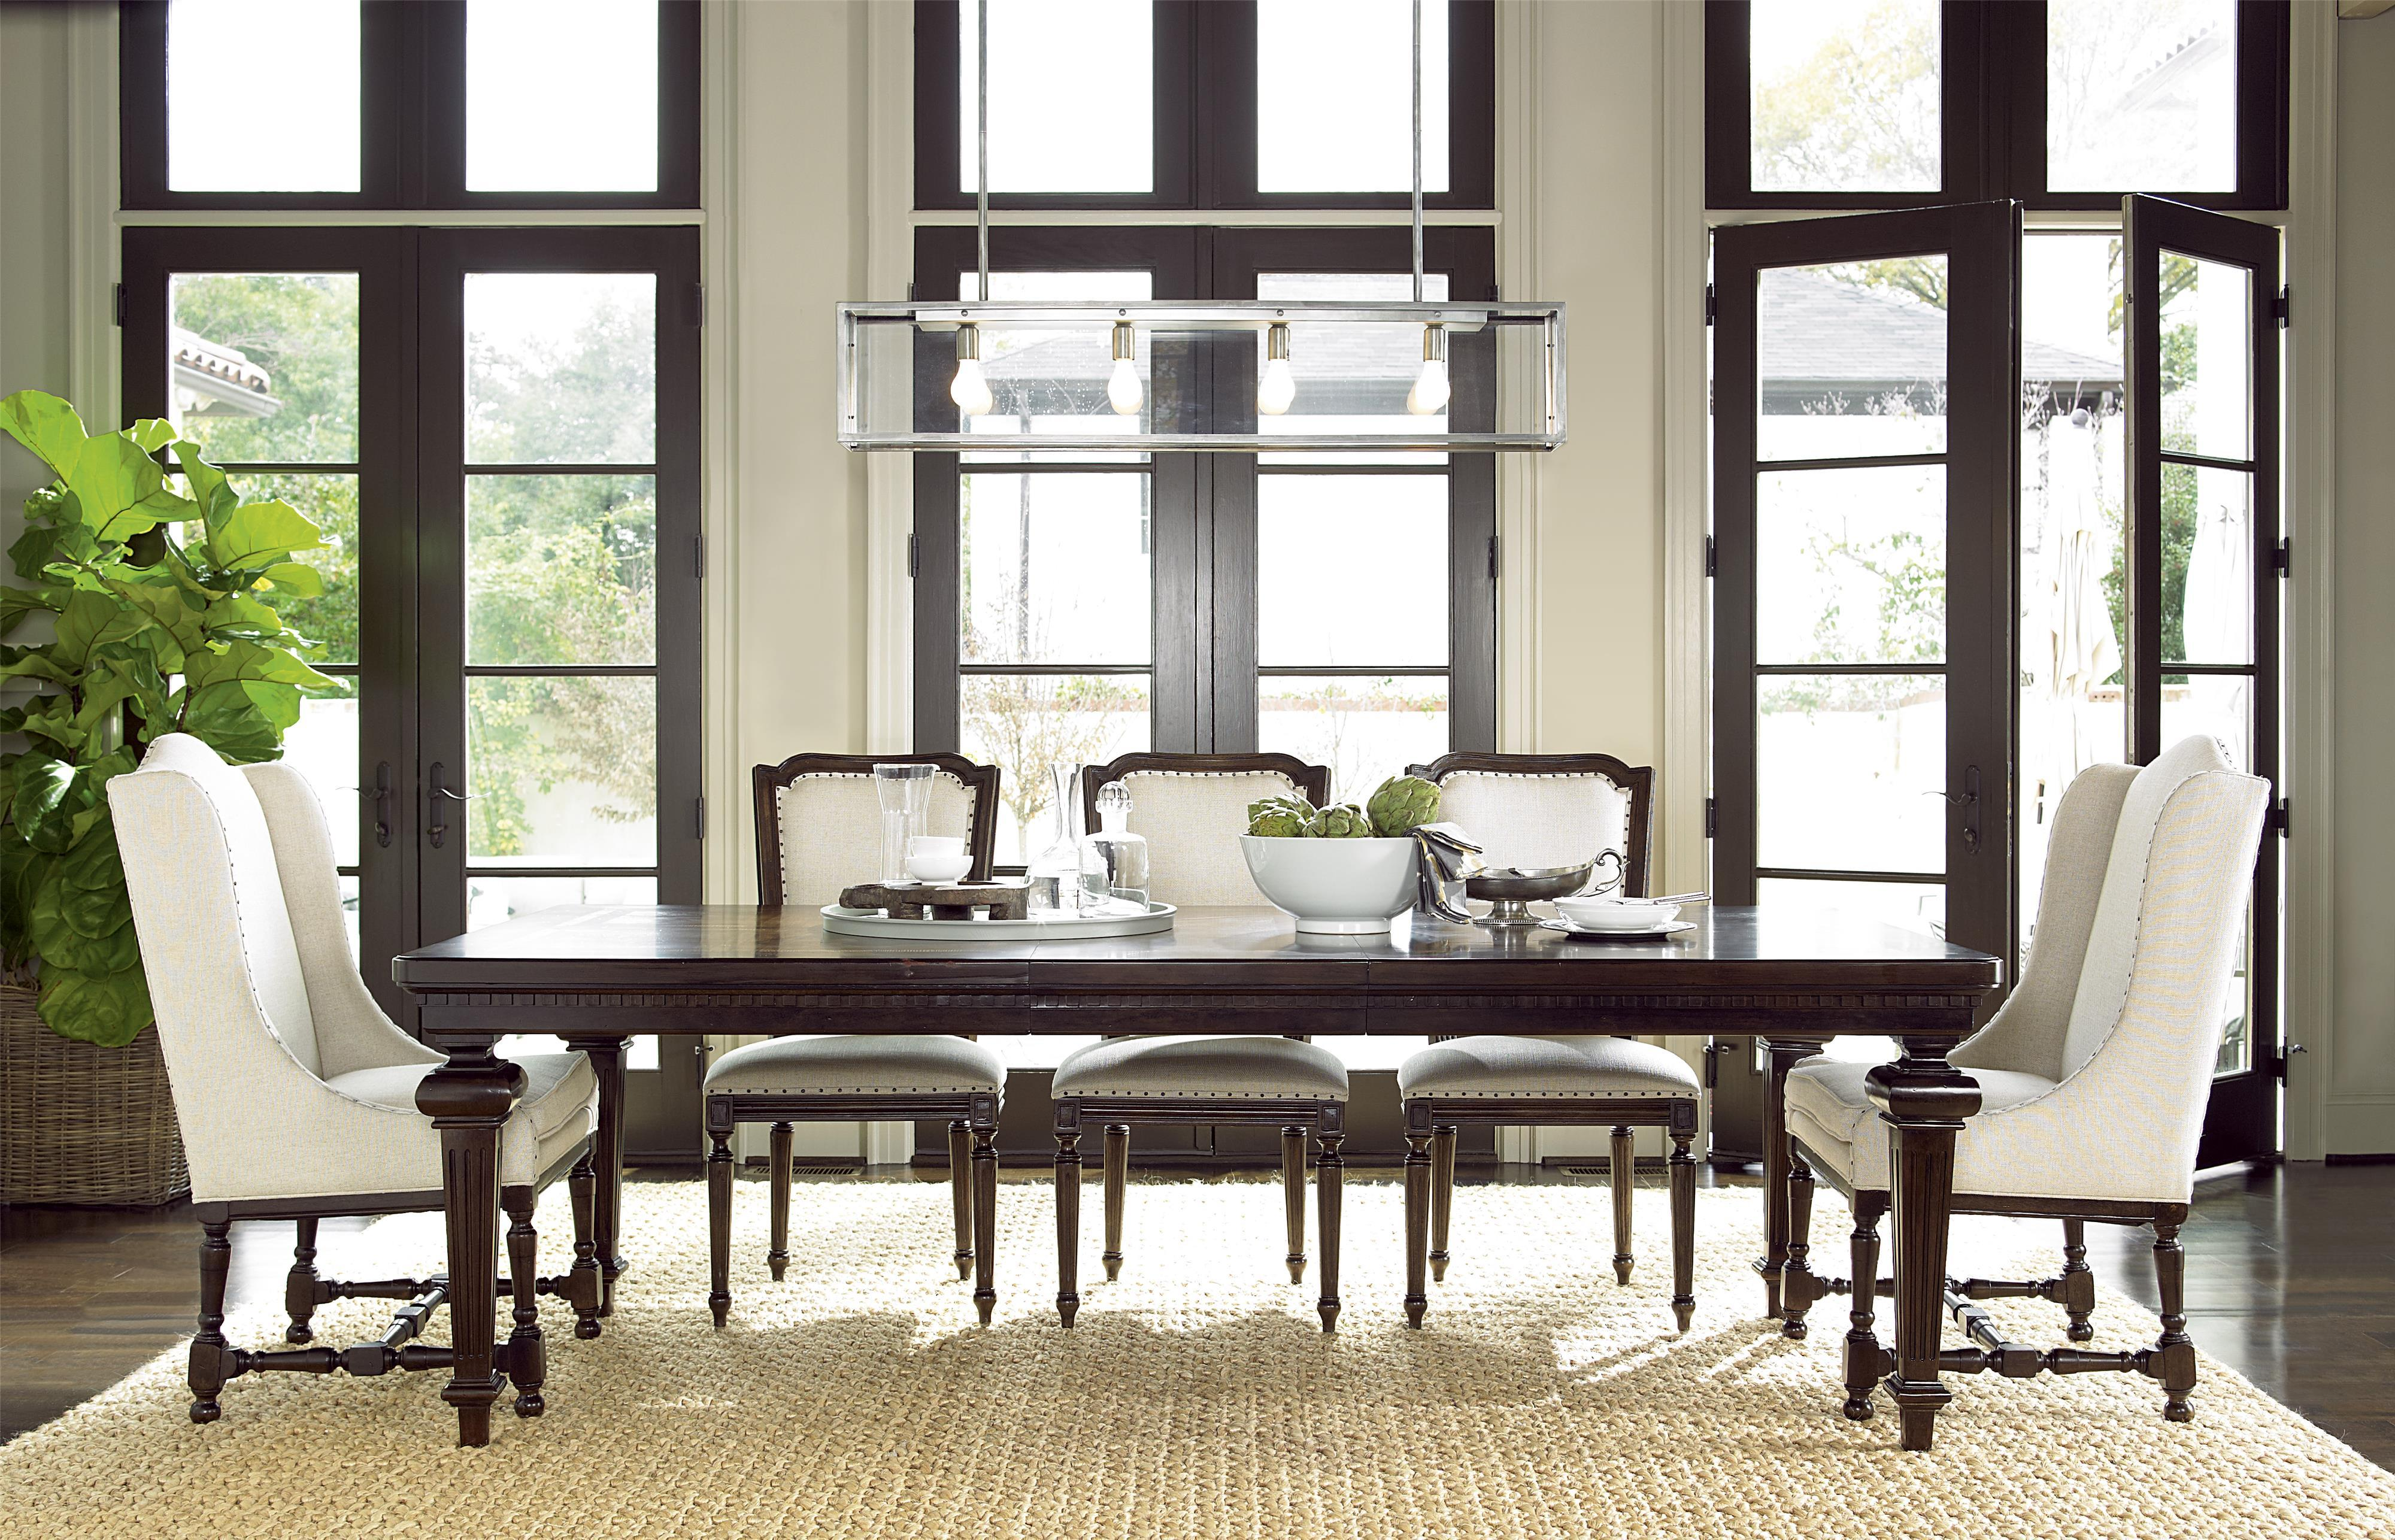 Providence Bedroom Furniture Providence 5 Piece Dining Set Includes Table And 4 Side Chairs